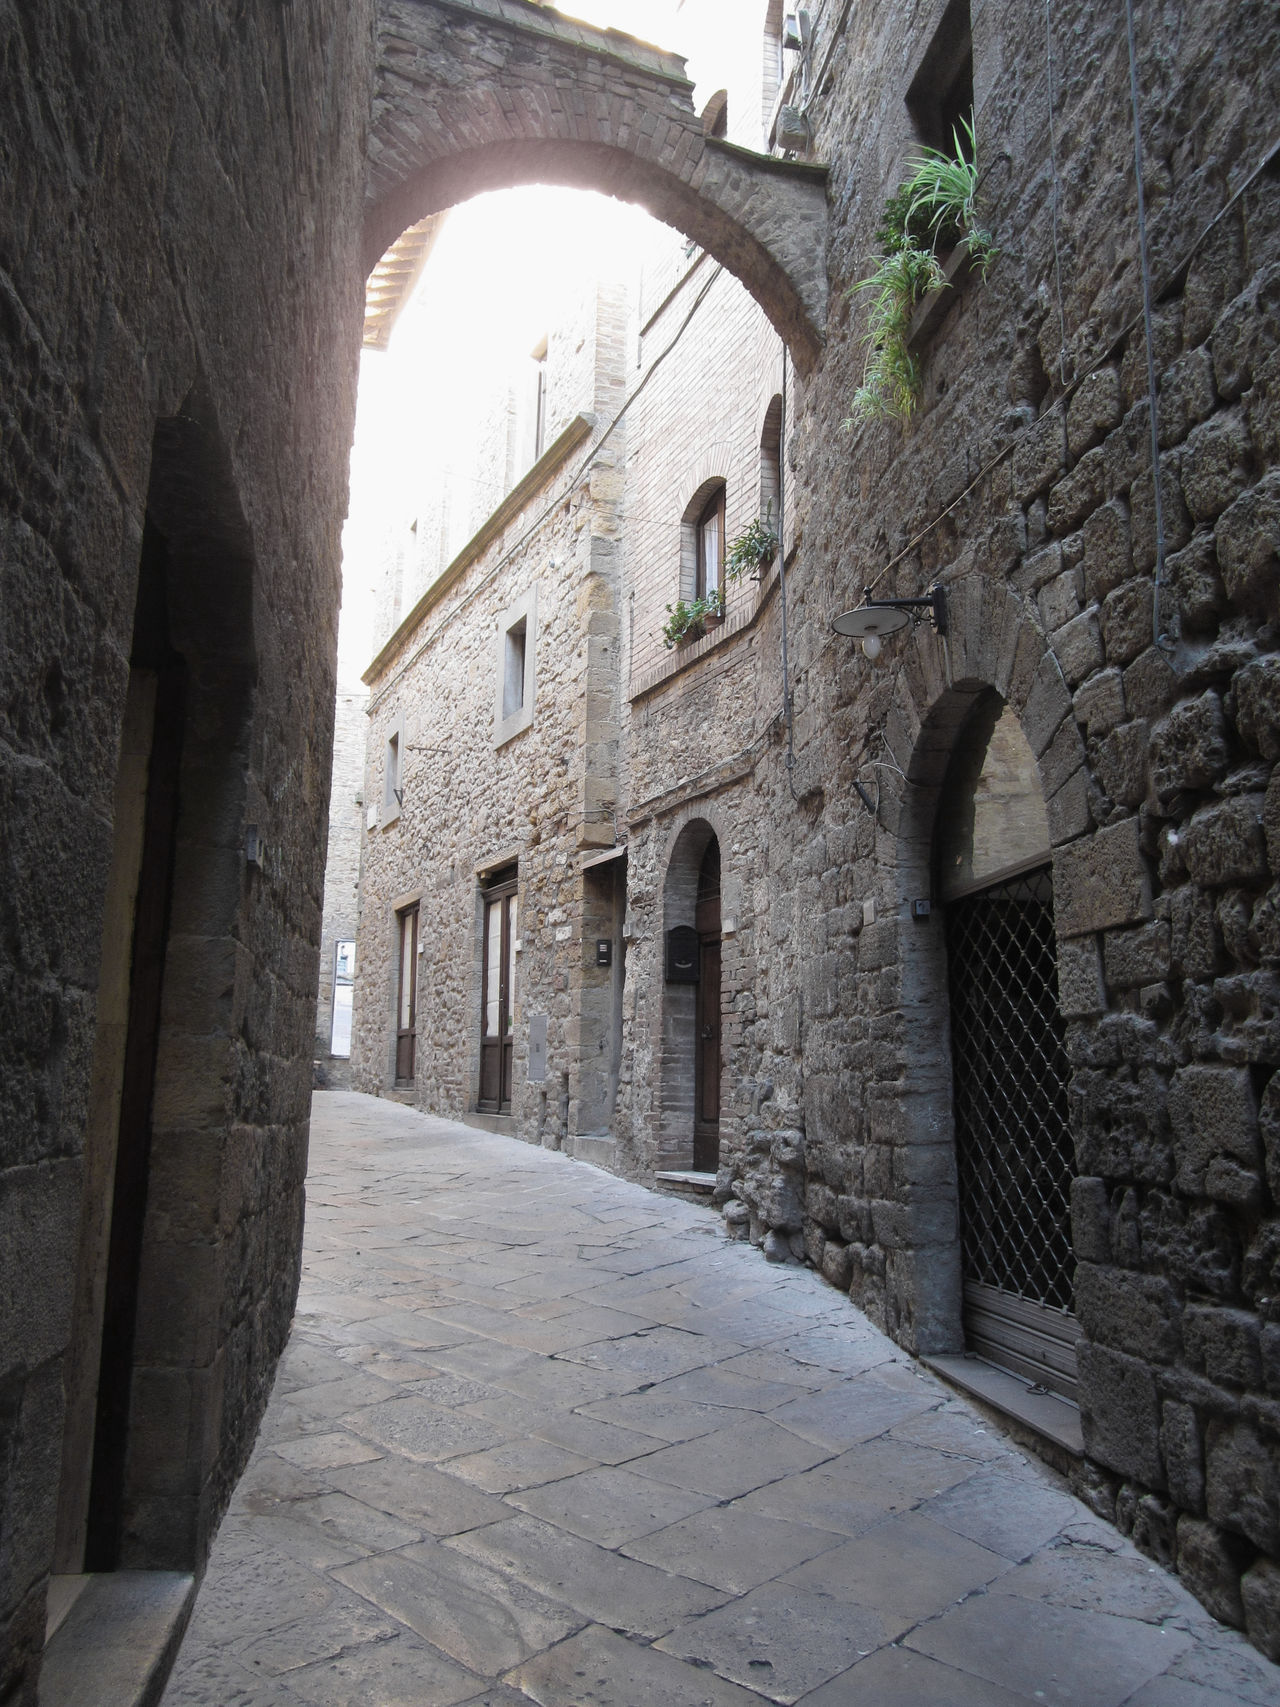 Hidden alley in Volterra village, province of Pisa . Tuscany, Italy Alabaster Alley Ancient Antique Arch Architecture Civilization Etruscan Hamlet High Hill Historic Italy Medieval Pisa Stony Street Tourism Town Travel Tuscany View Village Volterra Wall